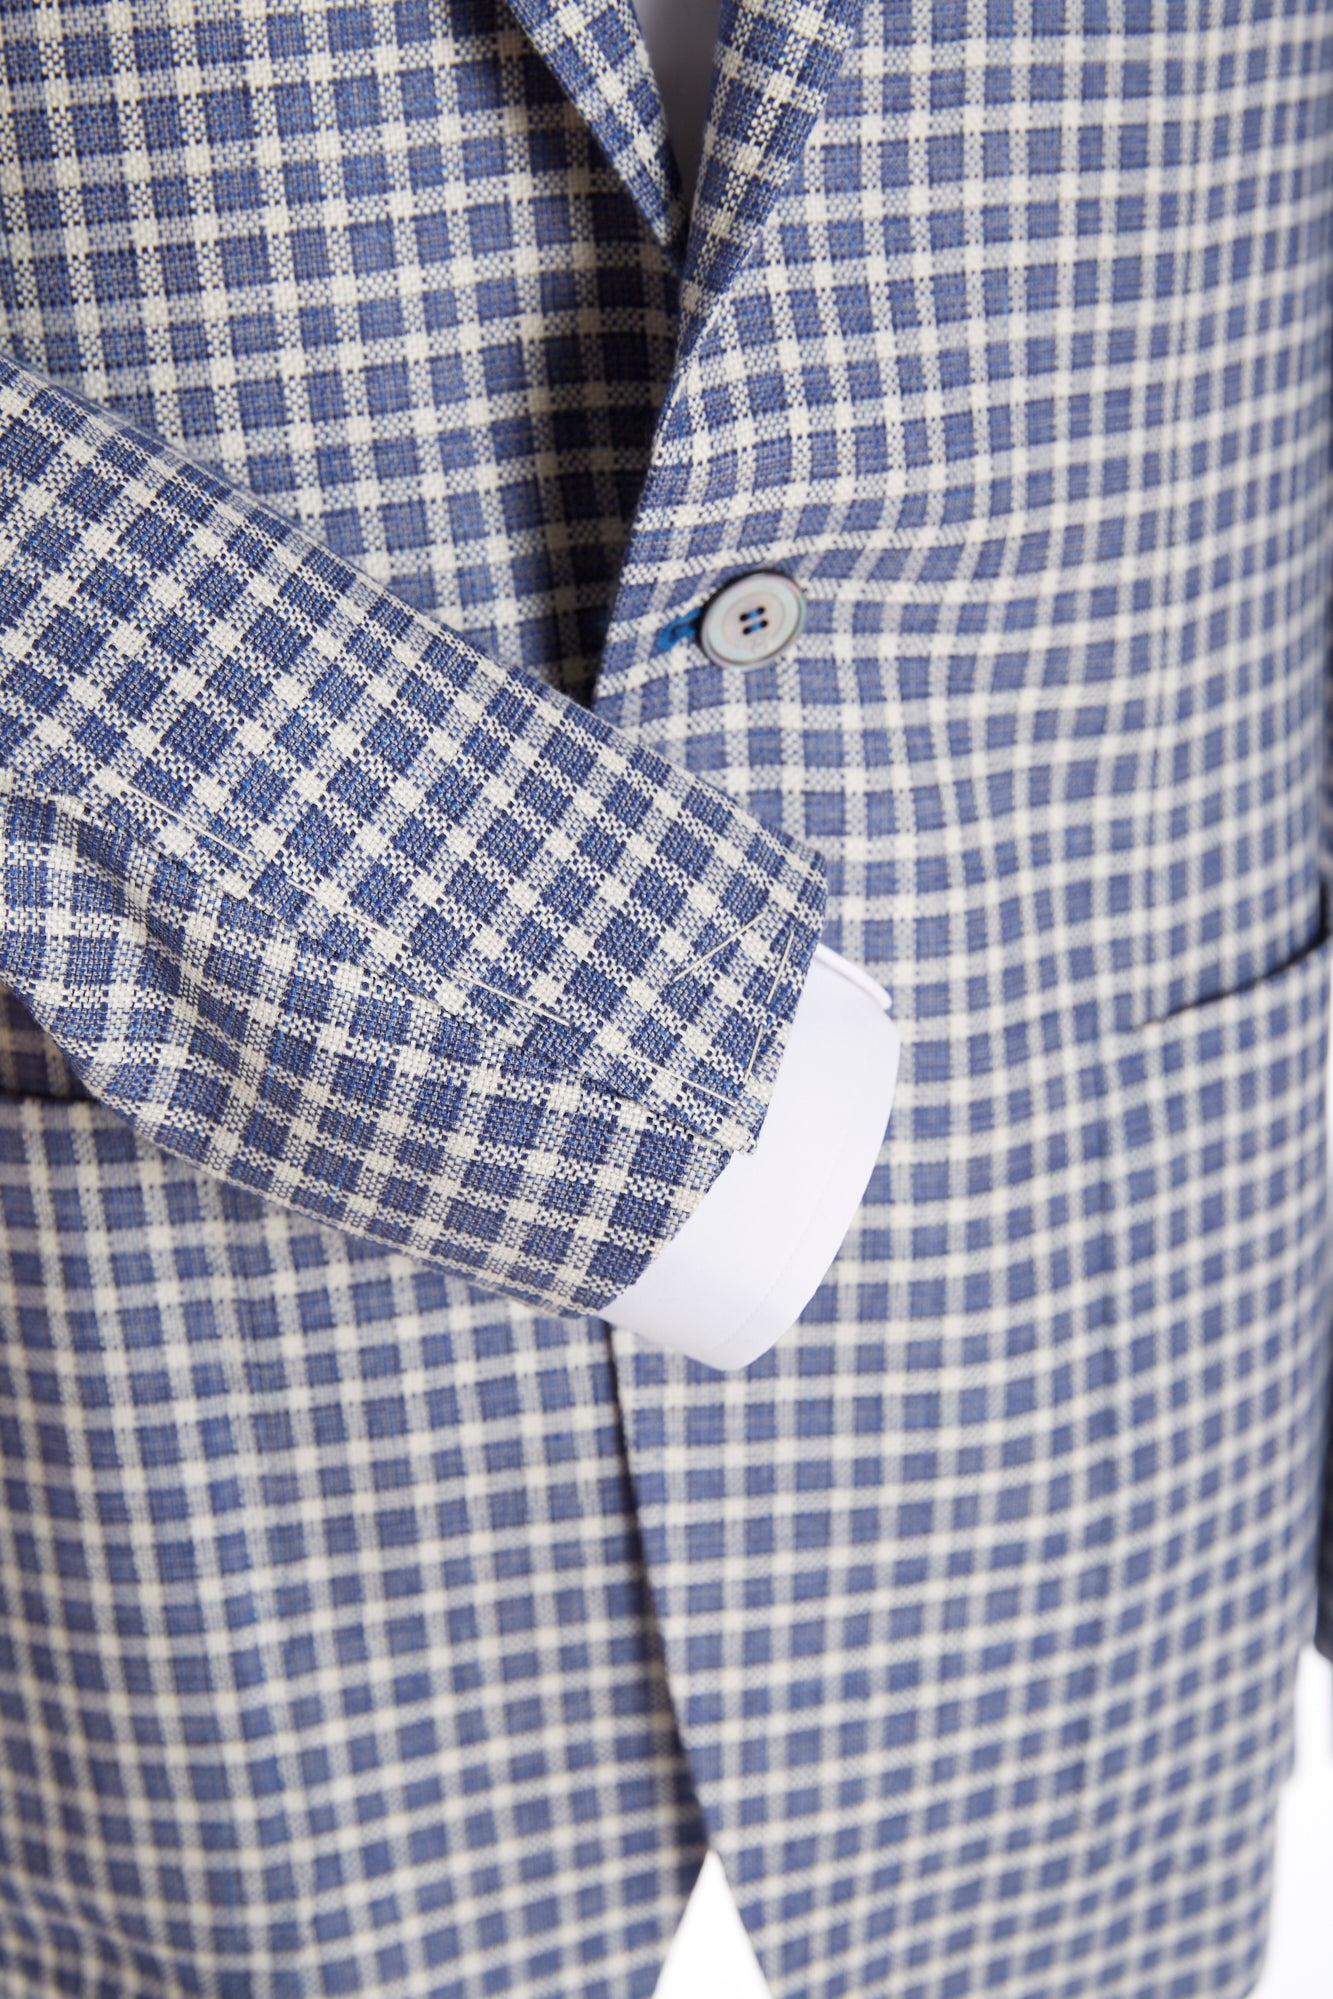 Canali Blue and White Check Sport Jacket - Sport Jackets - Canali - LALONDE's